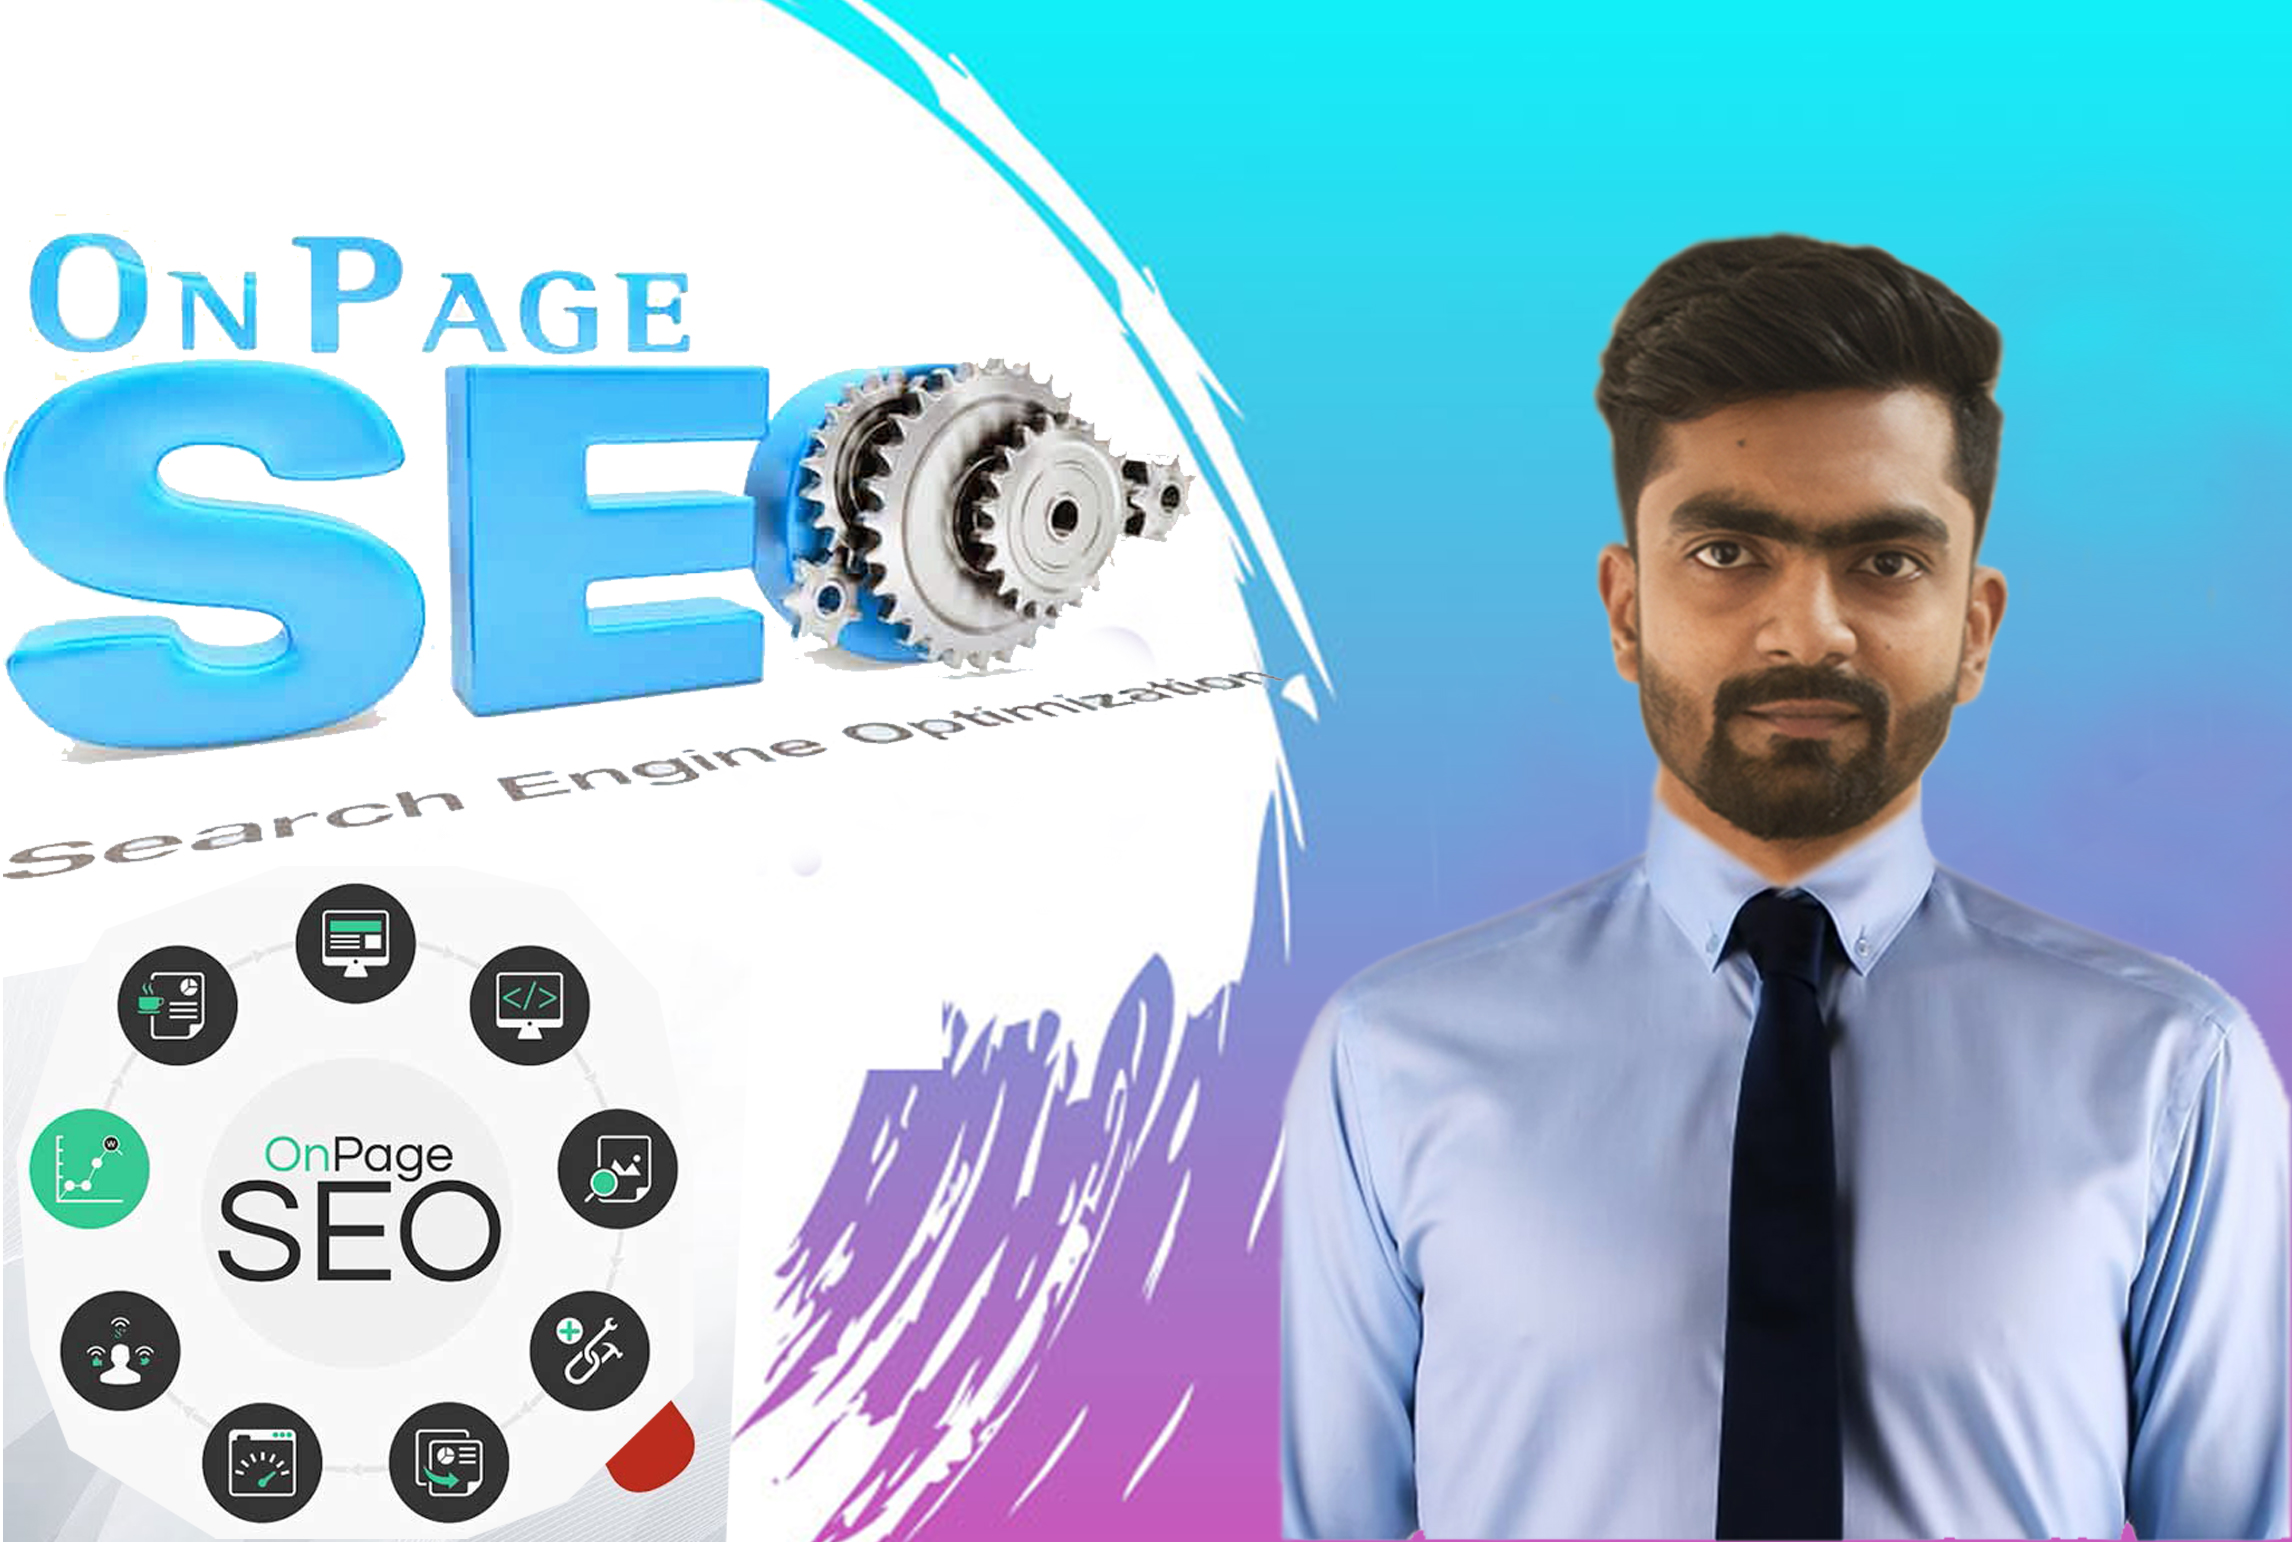 I will be your on page SEO expert for your wordpress website